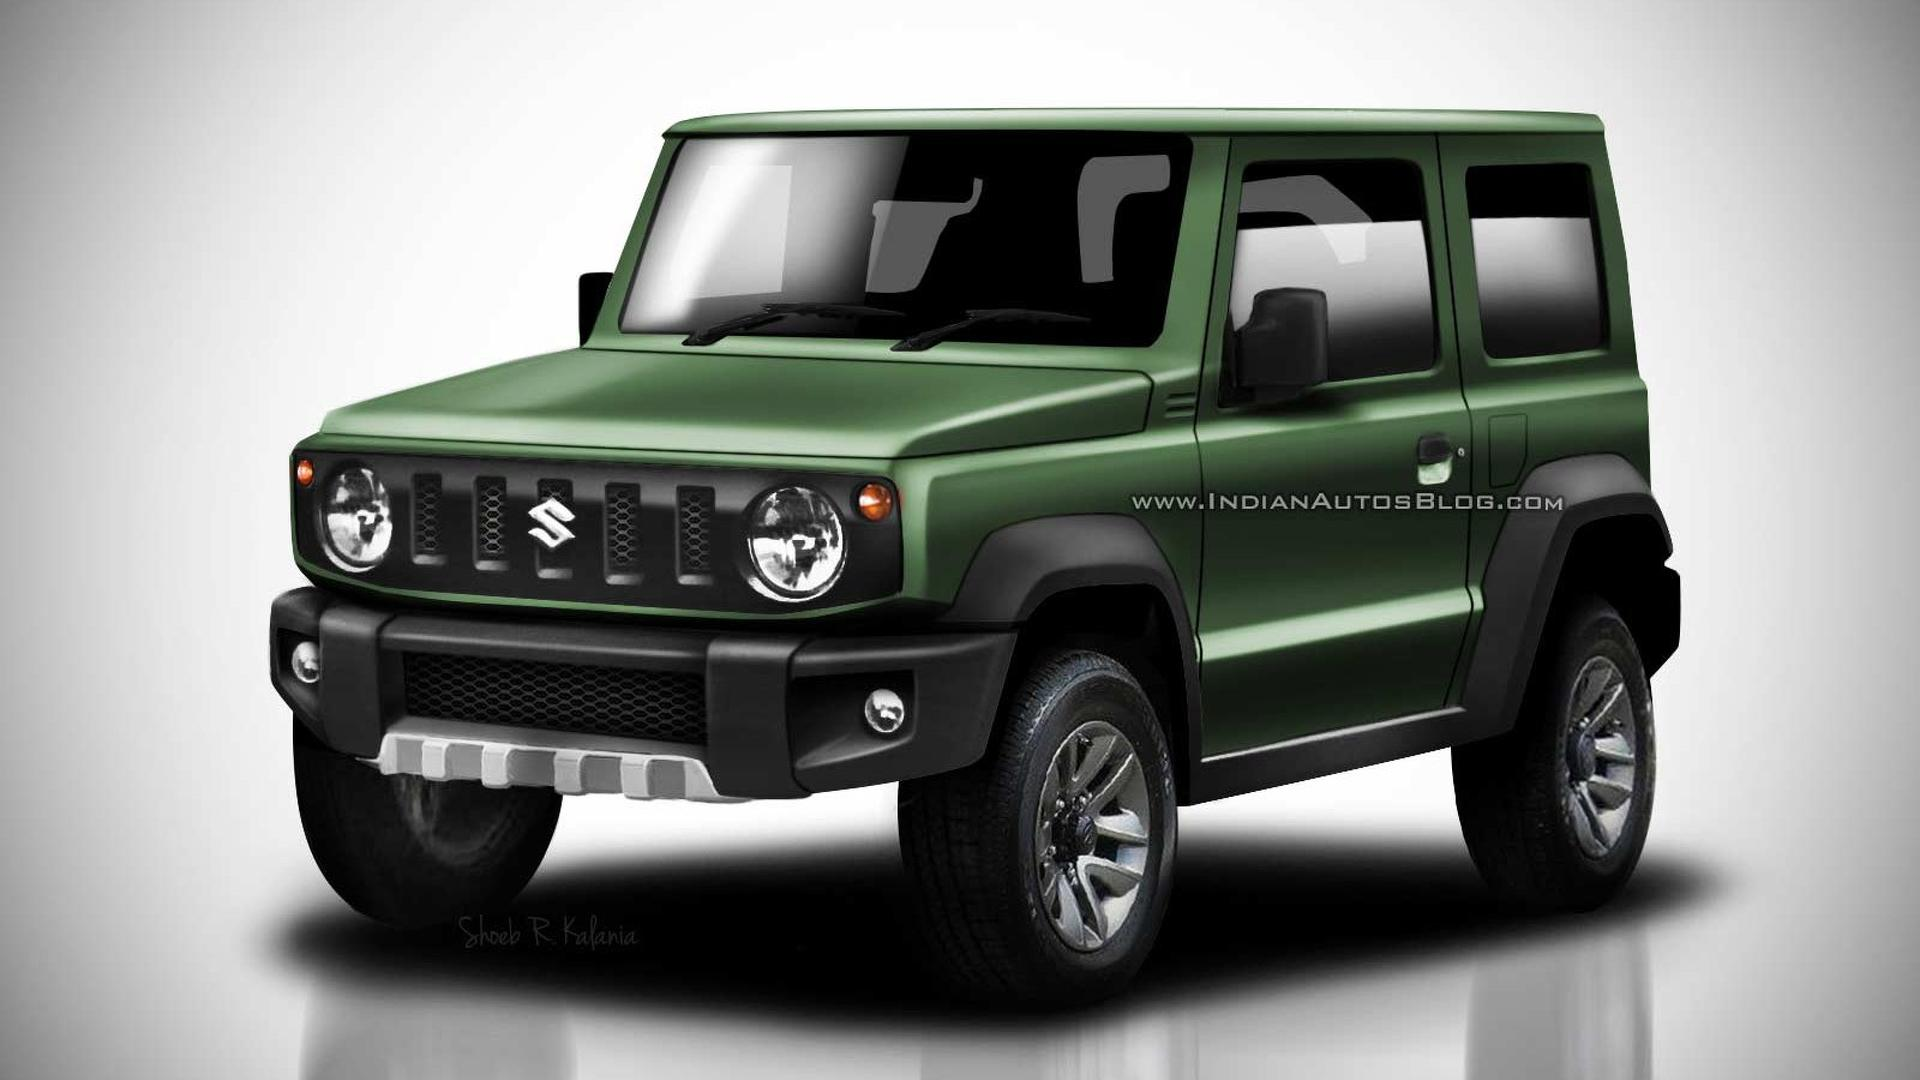 2018 Suzuki Jimny Leaked Images Go High-Res In Colorful ...